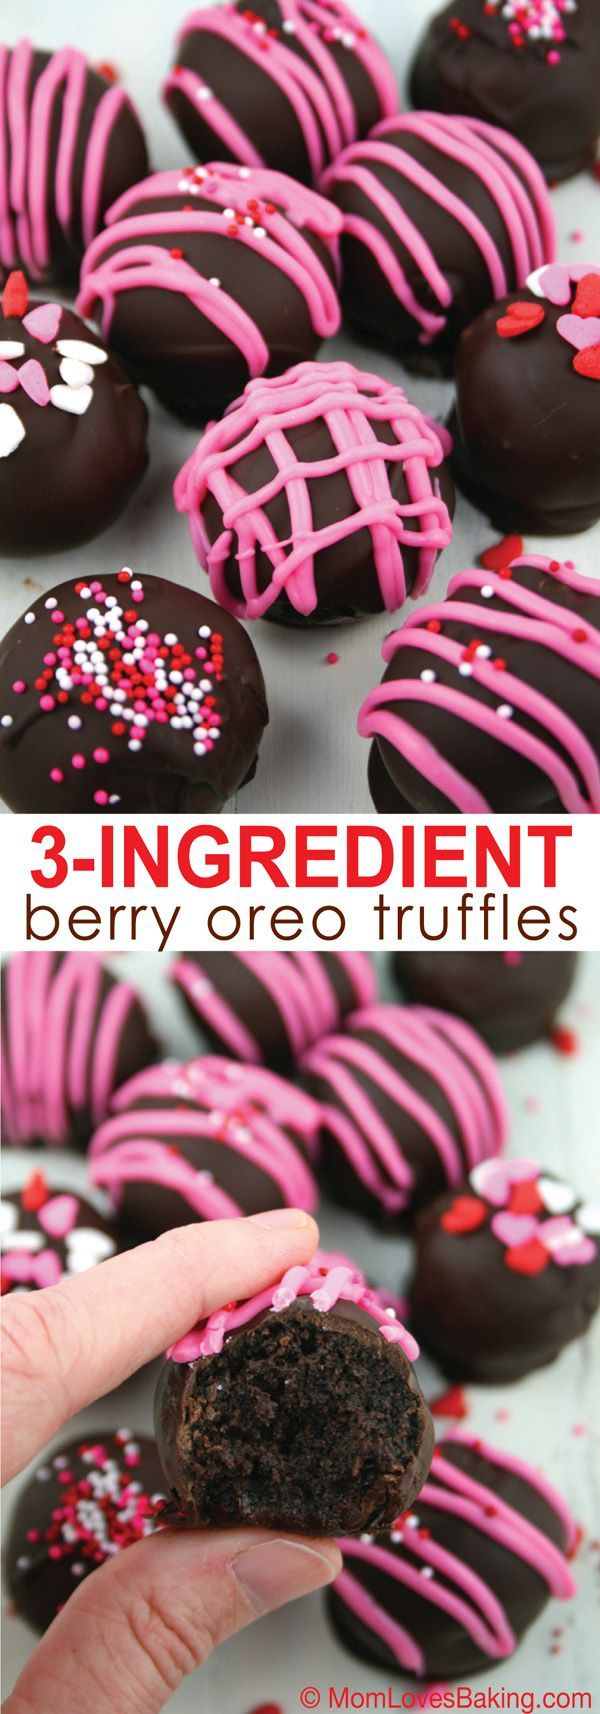 What easy desserts and beverages can i make with oreos?give recipes.?